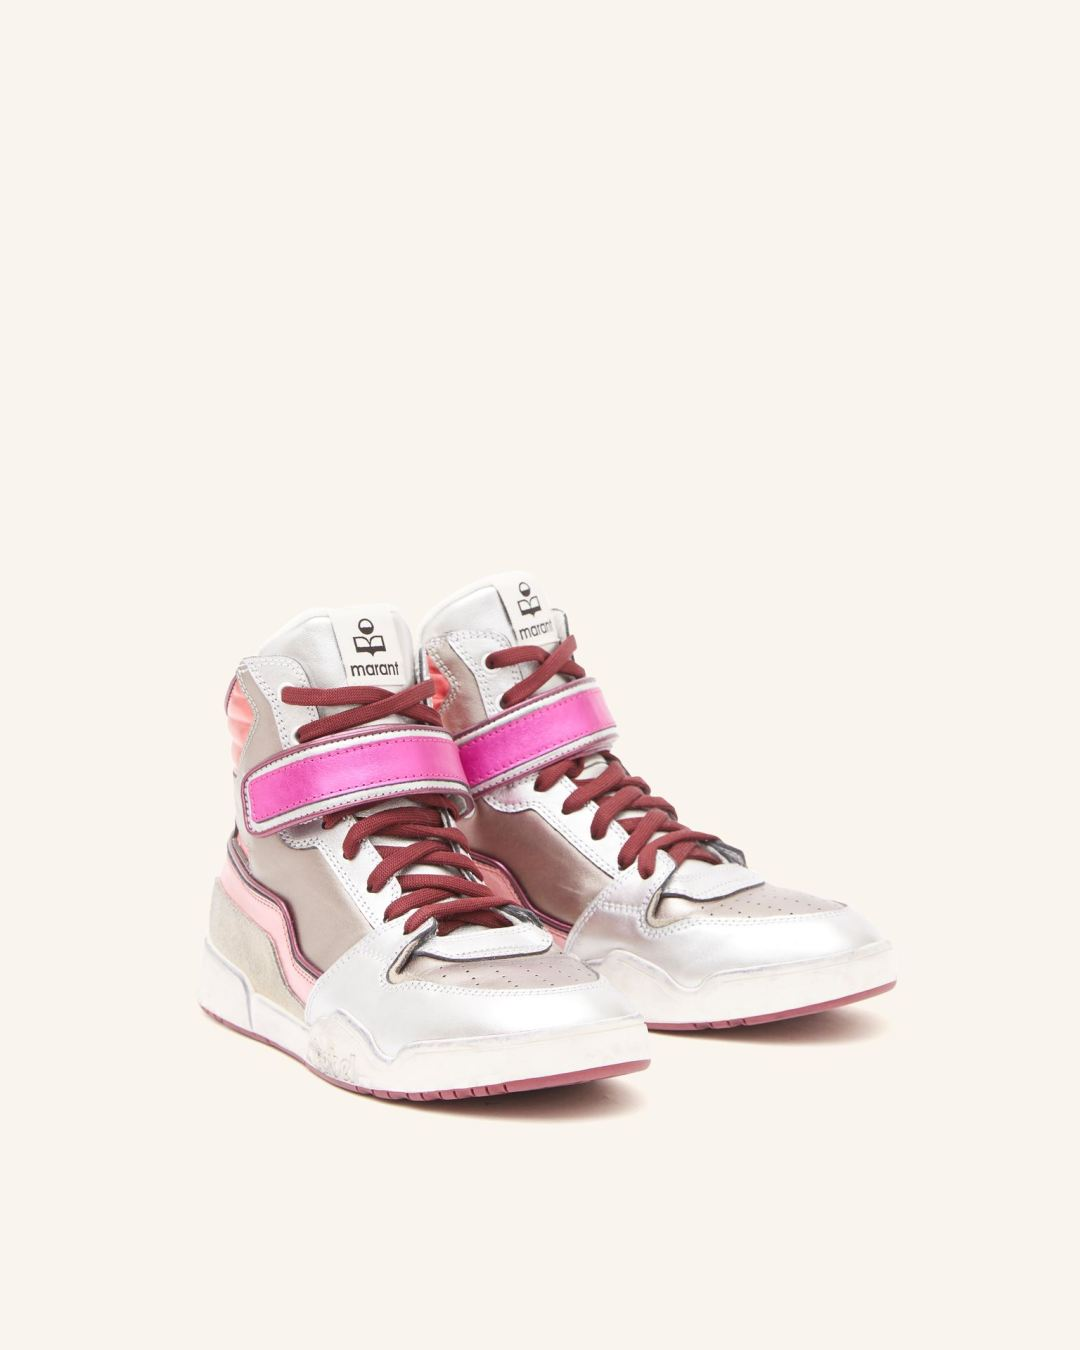 Isabel Marant Sneakers Review